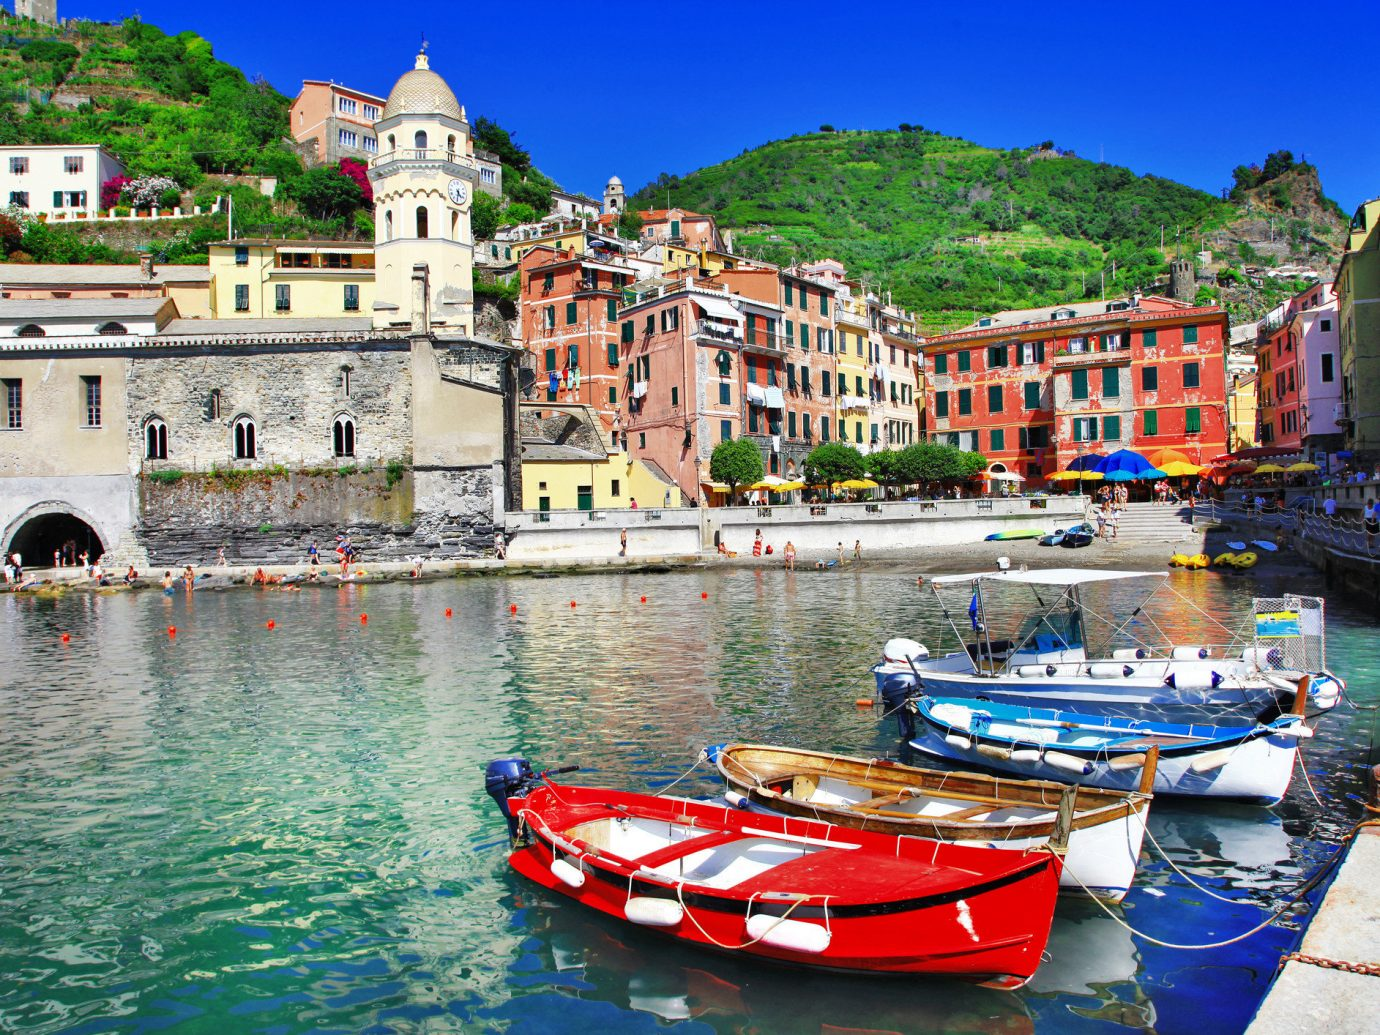 Italy Romance Trip Ideas water outdoor Boat waterway scene water transportation sky Harbor Town reflection tourism City watercraft Sea boating leisure Coast port Canal recreation several